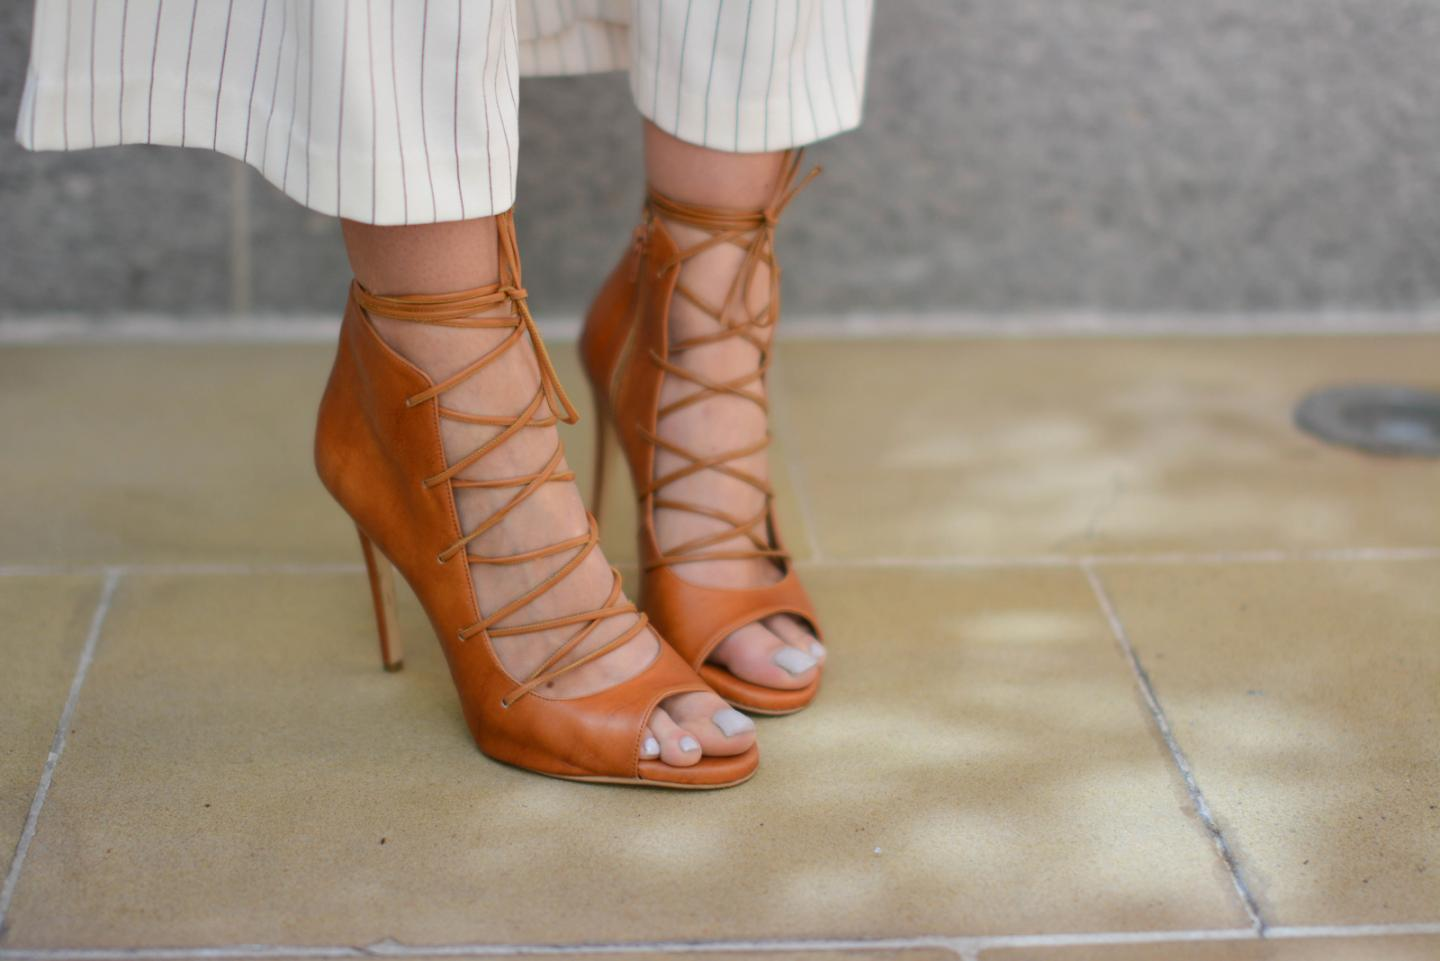 EJSTYLE - Emma Hill wearing tan lace up heels